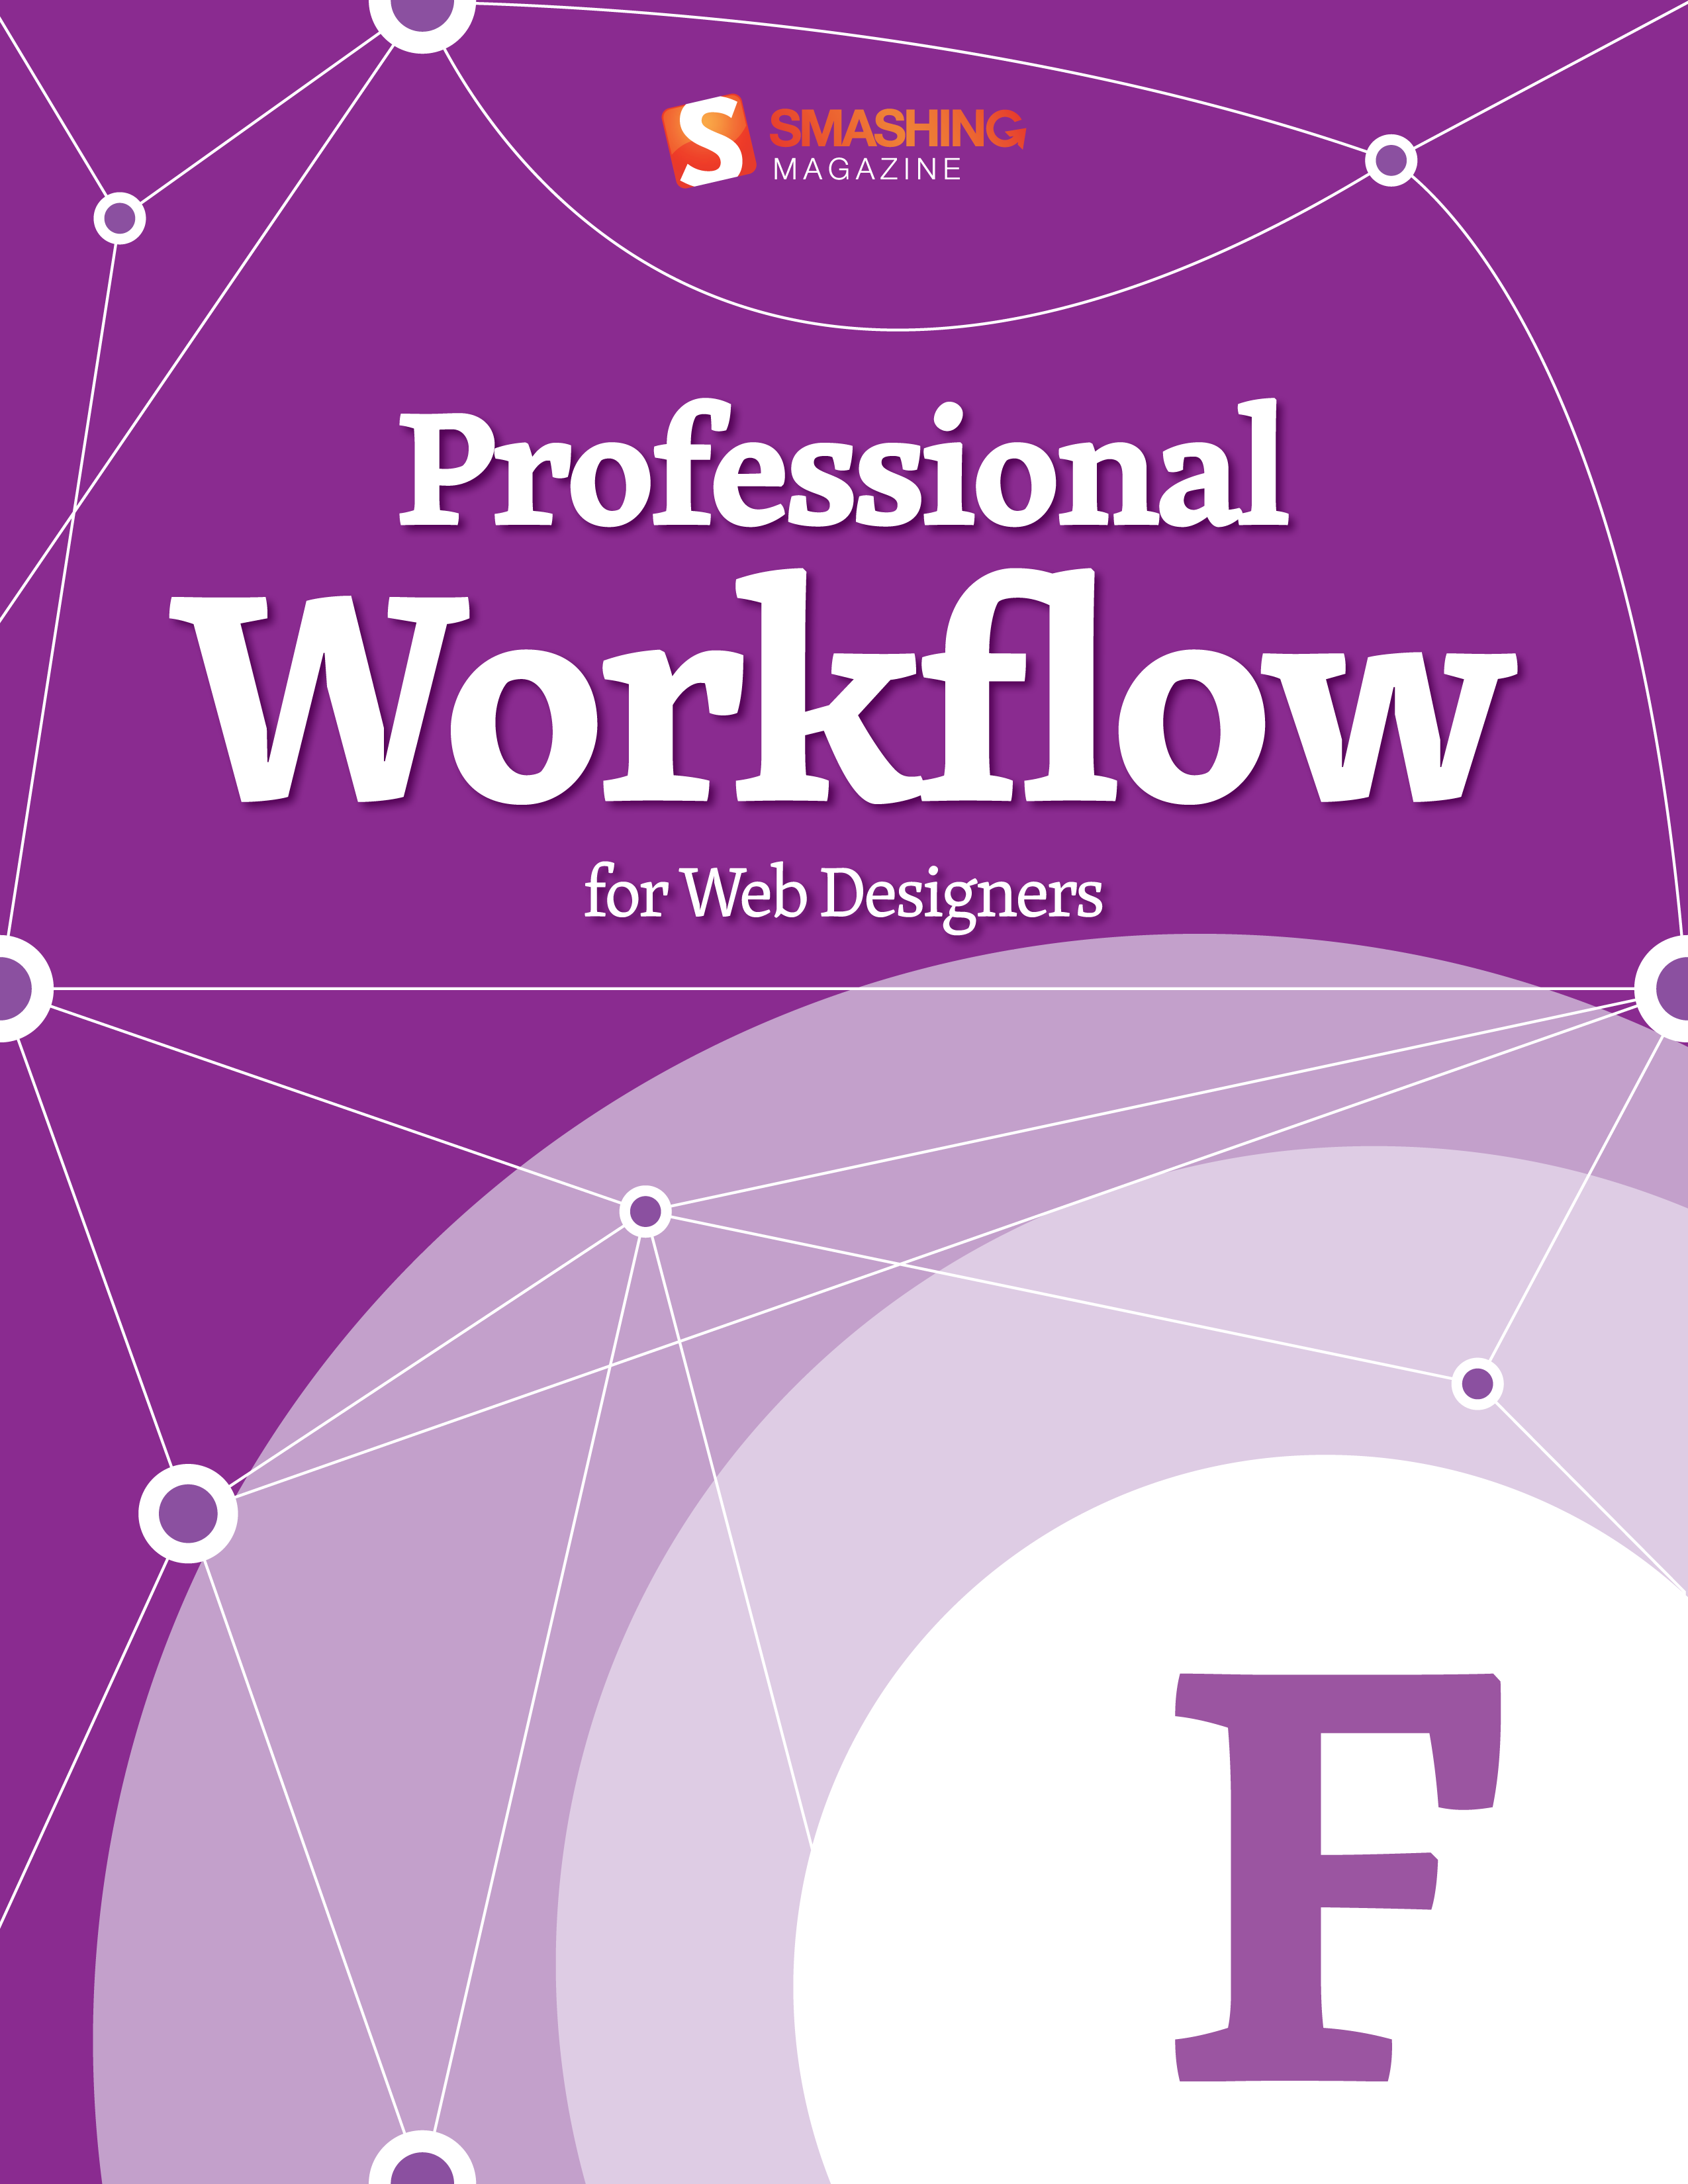 Professional Workflow for Web Designers By: Smashing Magazine